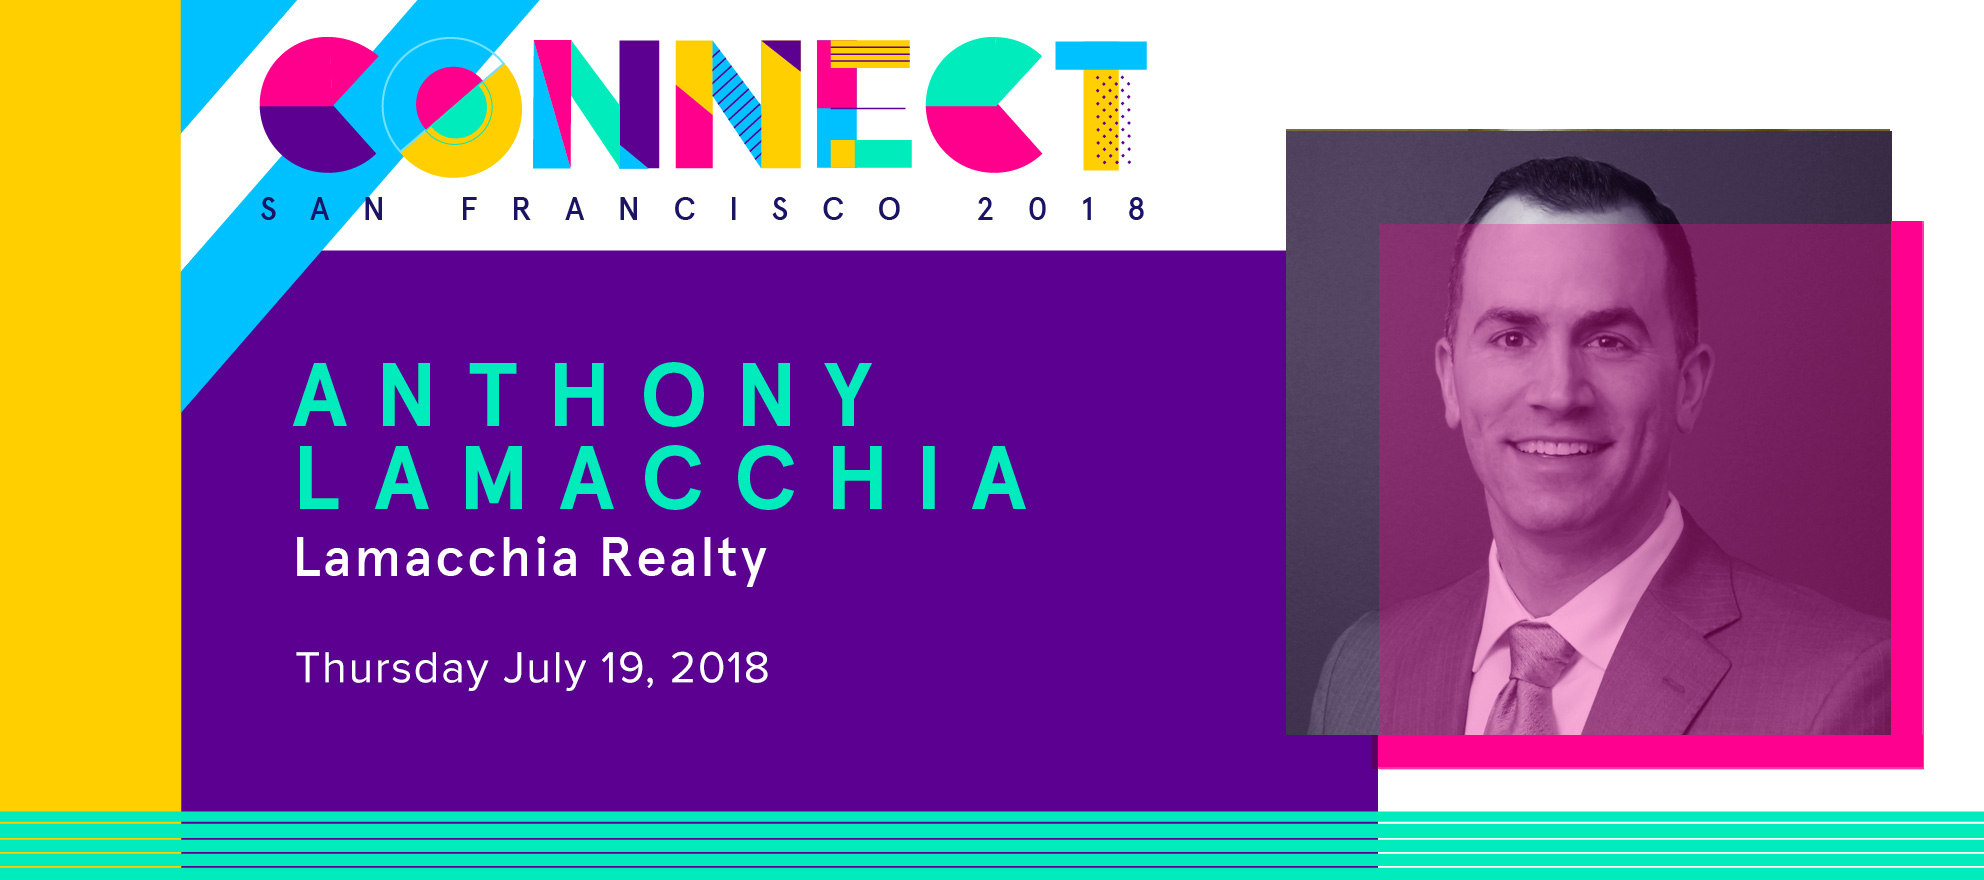 anthony lamacchia team brokerage speakers connect